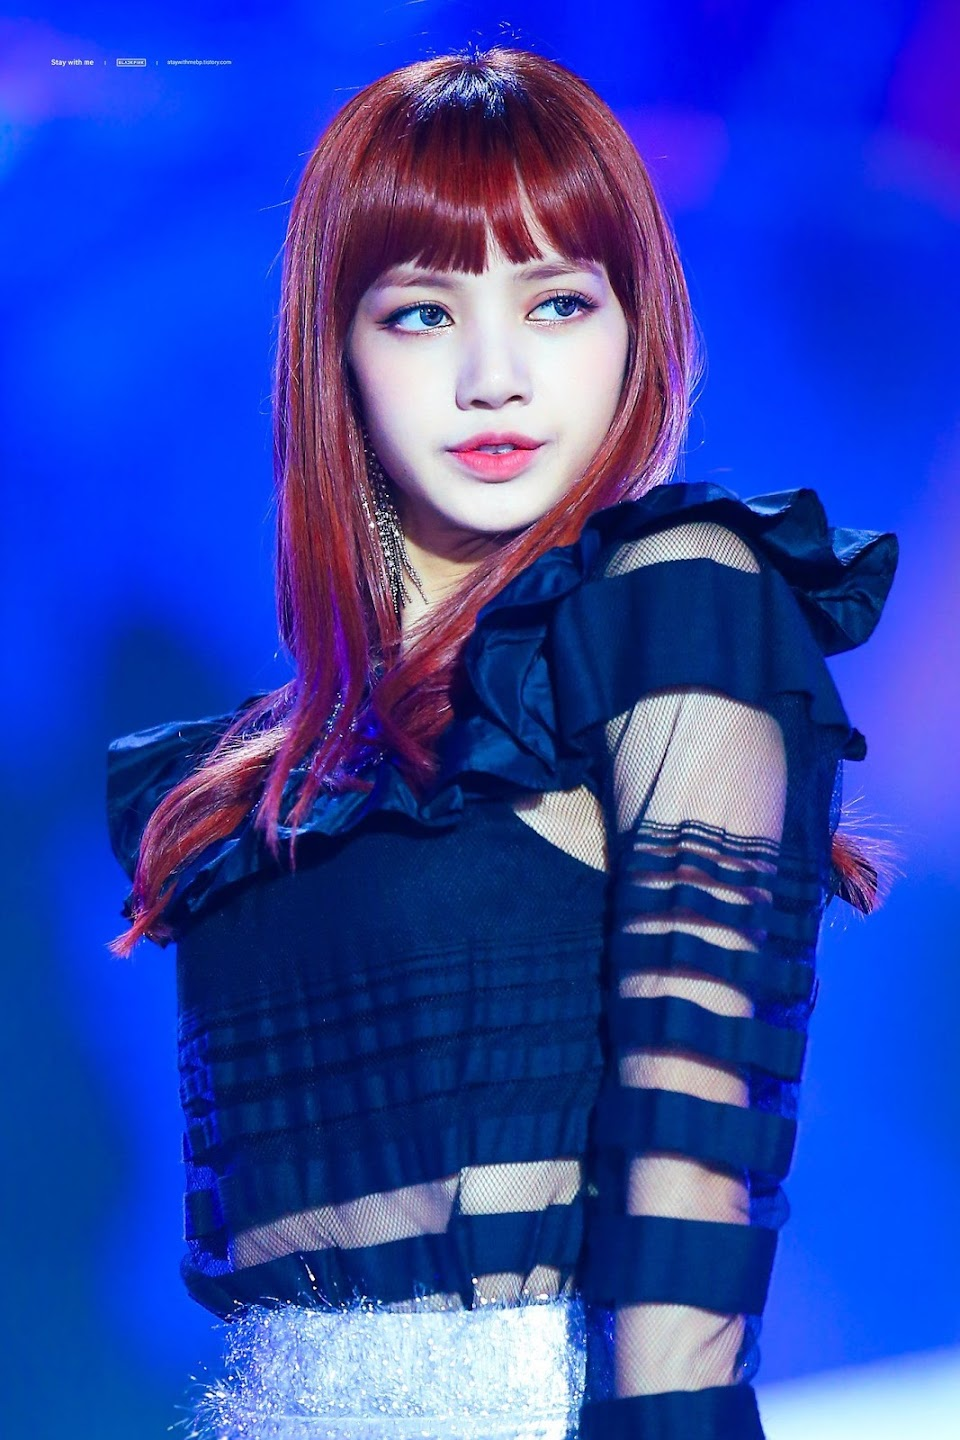 lisa red hair